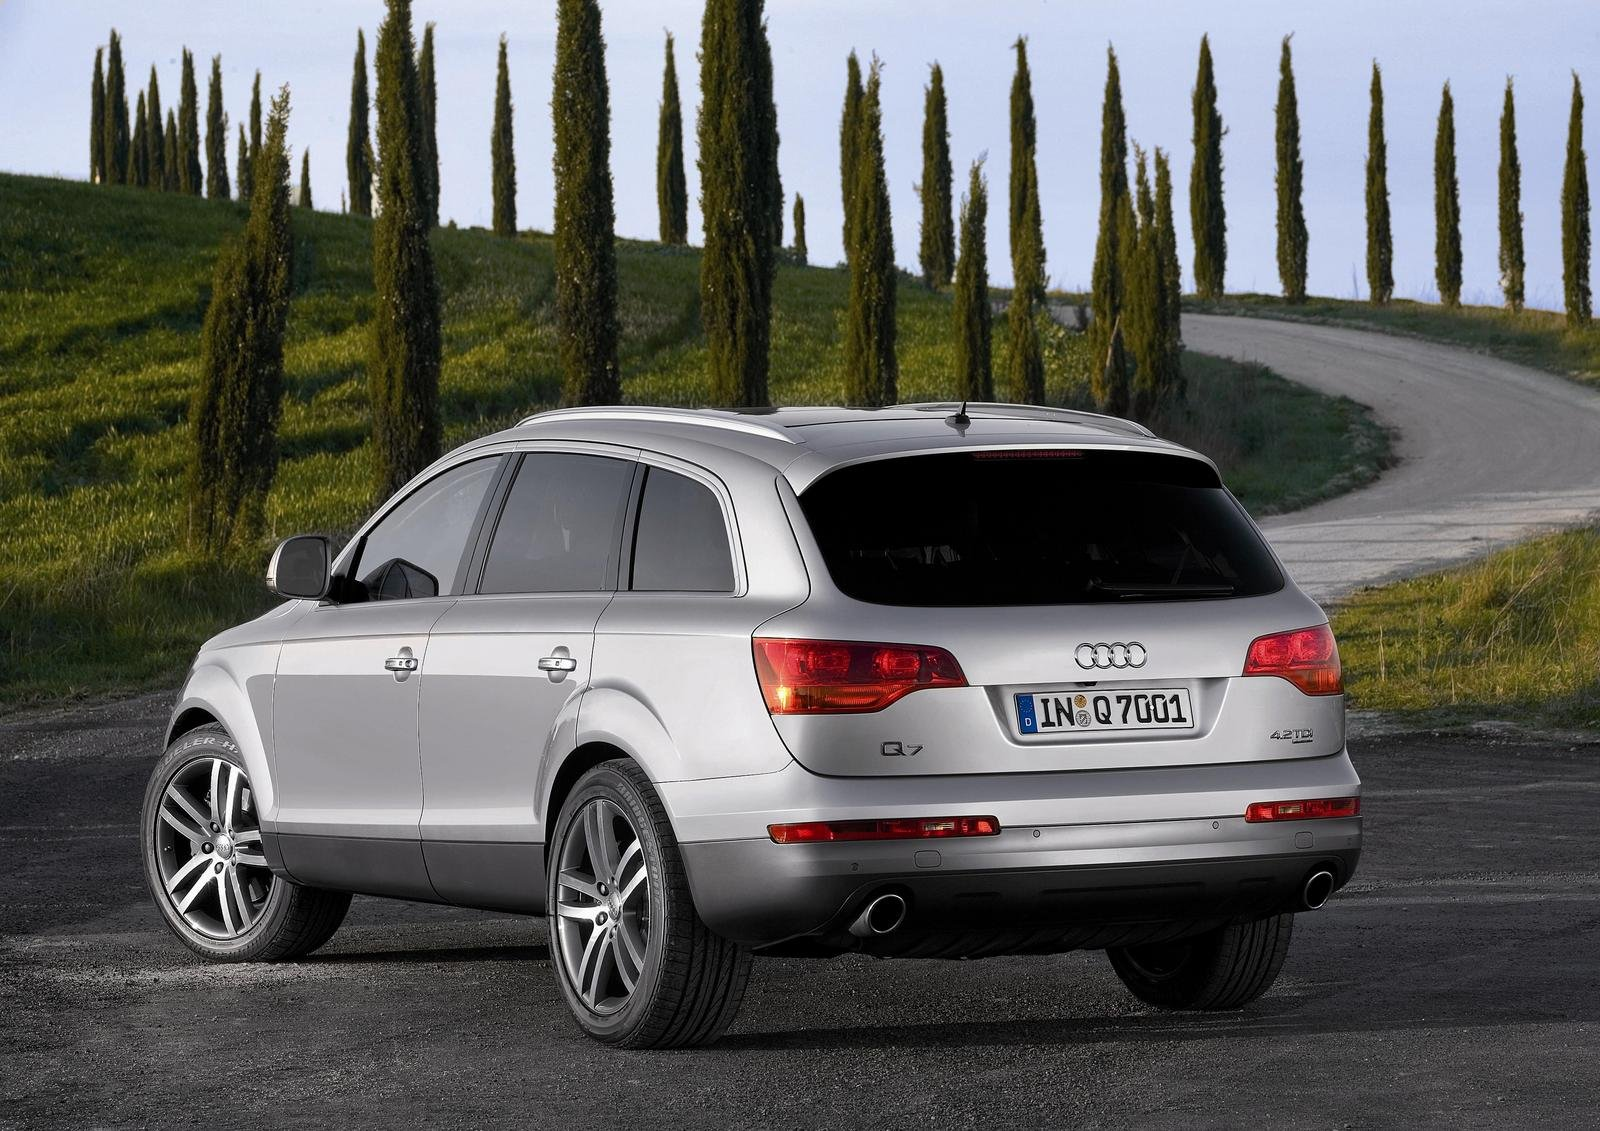 2007 audi q7 4 2 tdi picture 166683 car review top speed. Black Bedroom Furniture Sets. Home Design Ideas